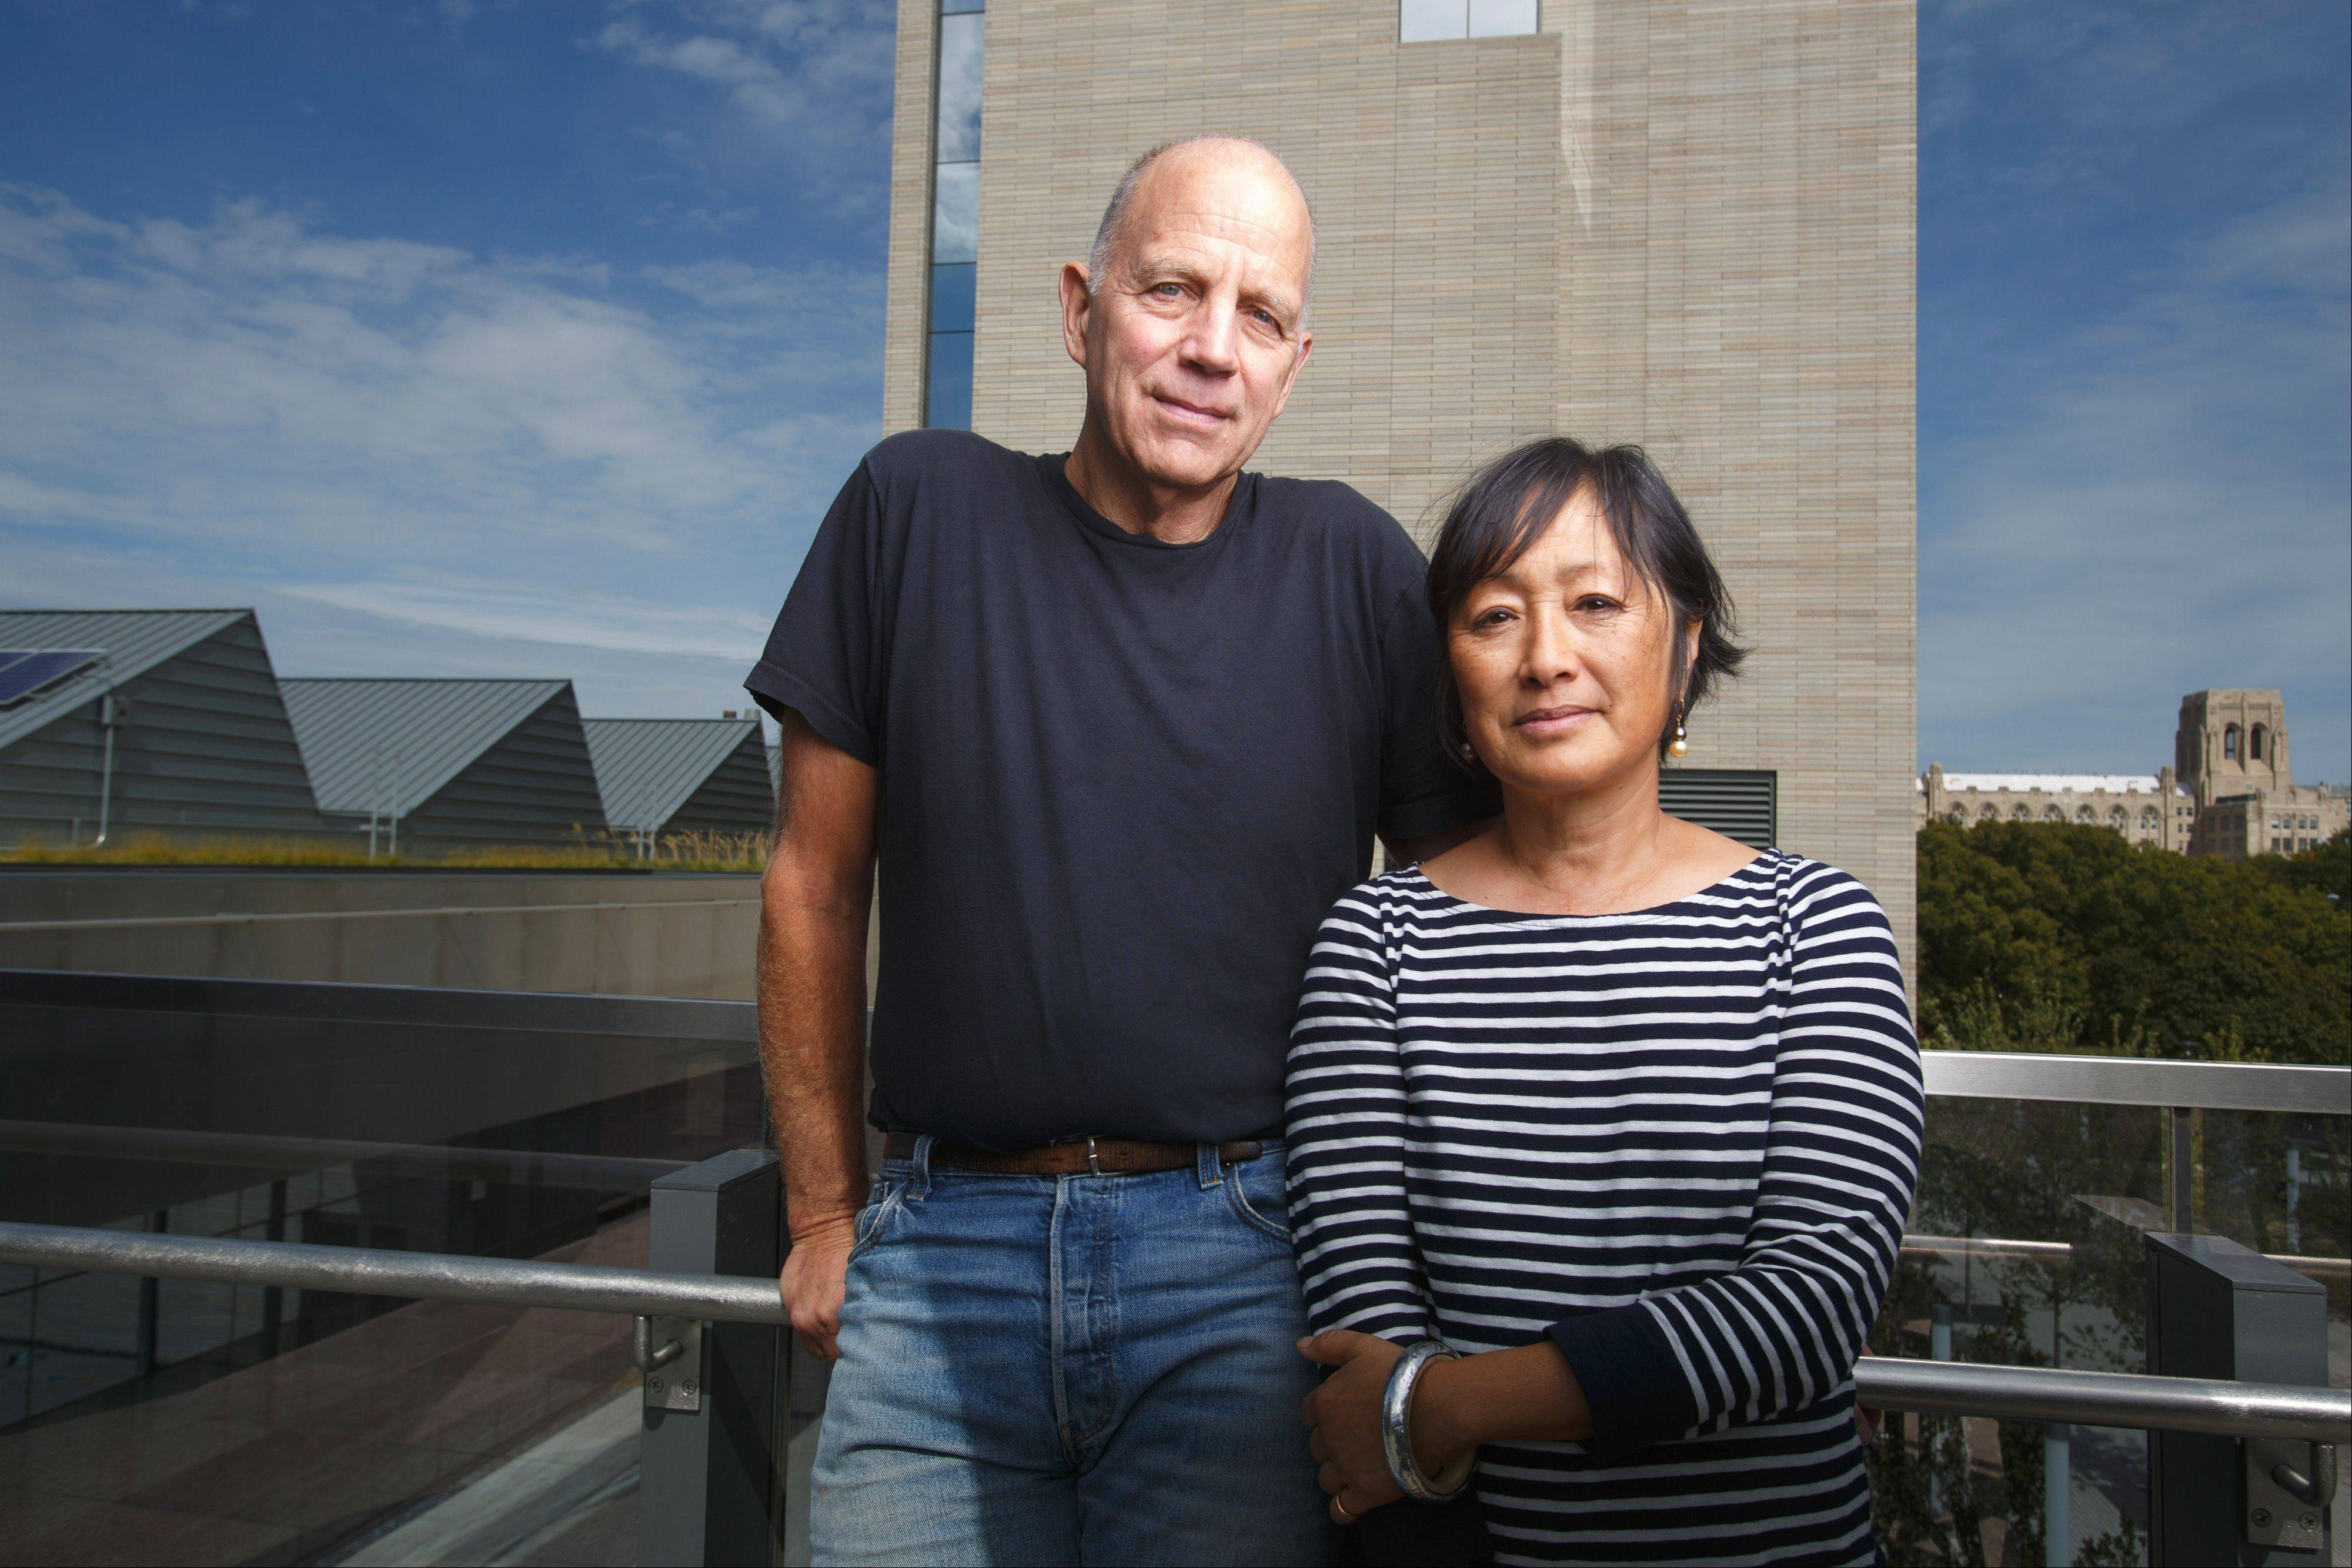 Architects Tod Williams and Billie Tsien, designers of the University of Chicago's new Reva and David Logan Center for the Arts, will take part in a rare panel discussion as part of the Logan Launch Festival.